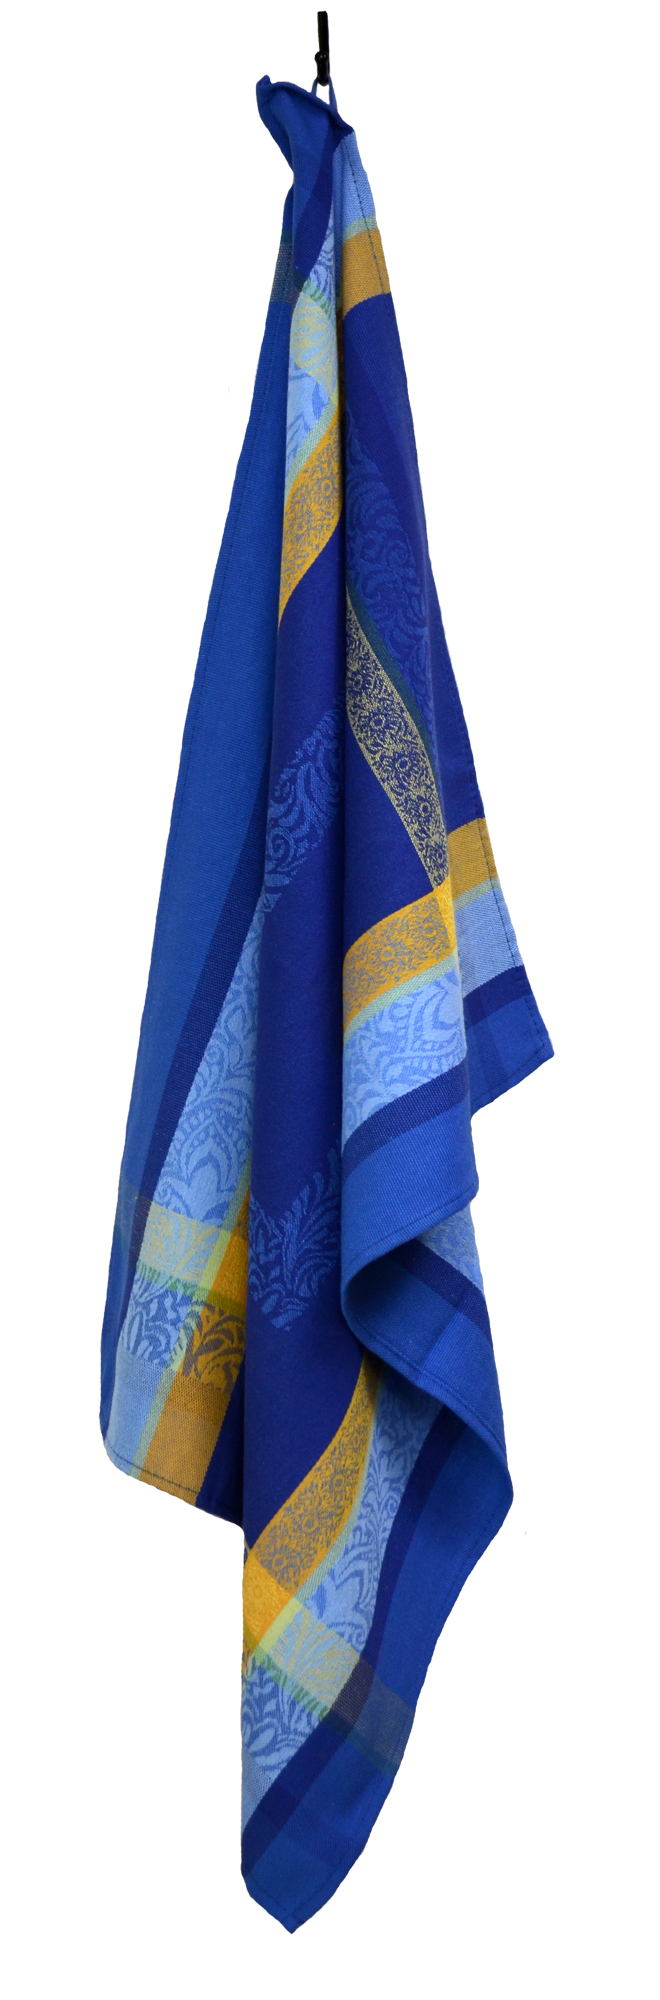 """Floral French Jacquard Tea Towel - Collection """"Bargeme"""" Blue/Yellow, Size: 21 x 27 inches, Price CAN$19.95"""